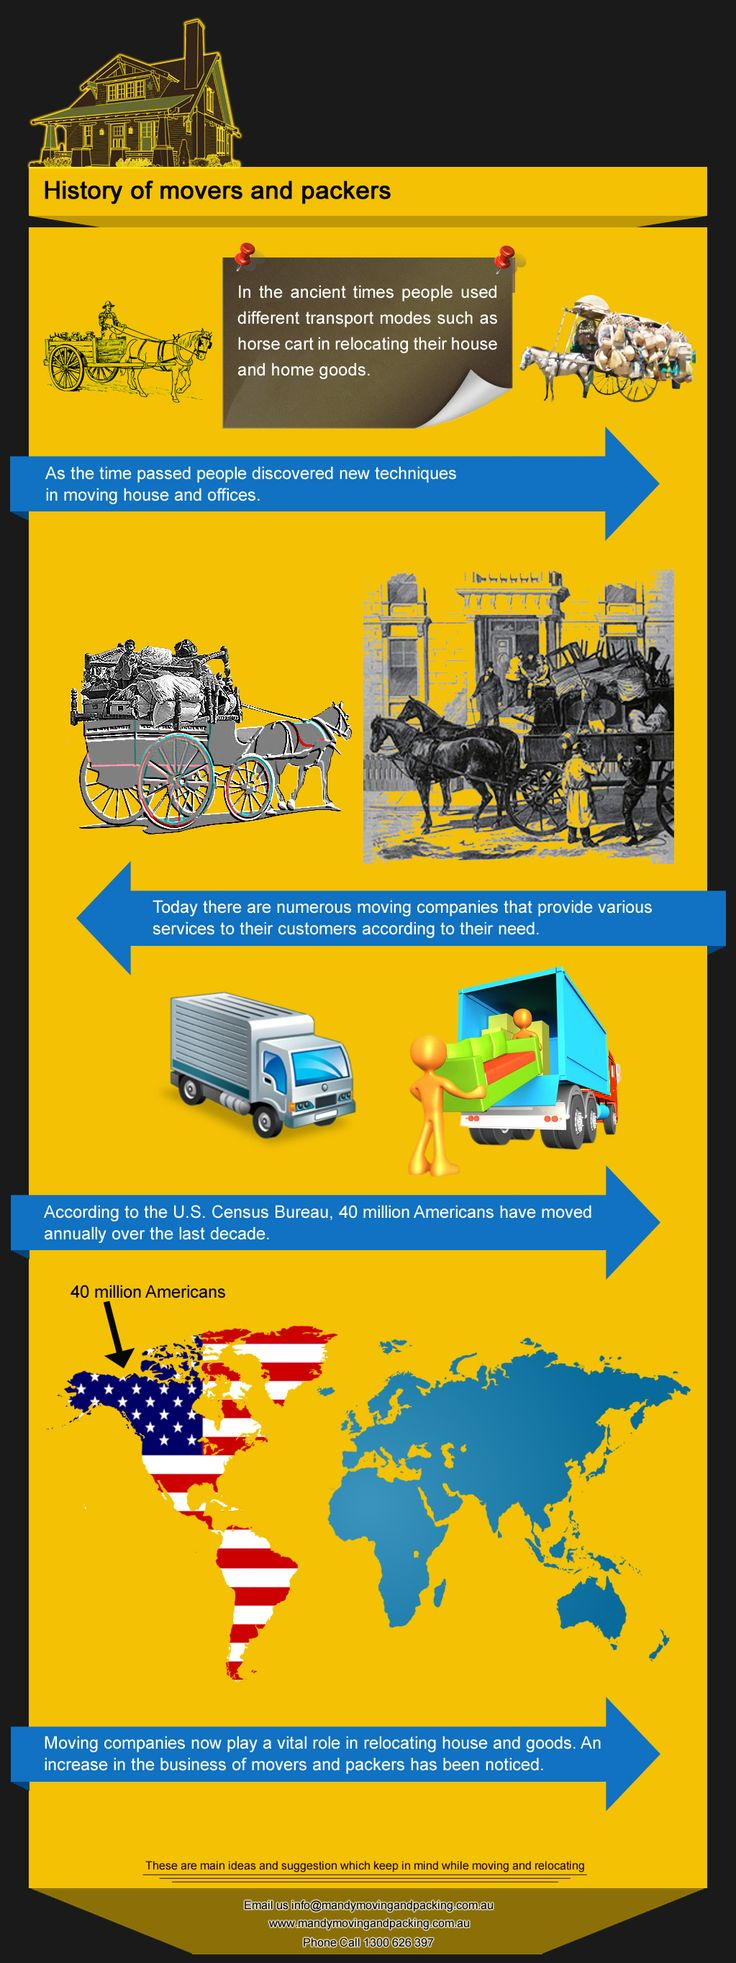 Infographic about mover and packers.